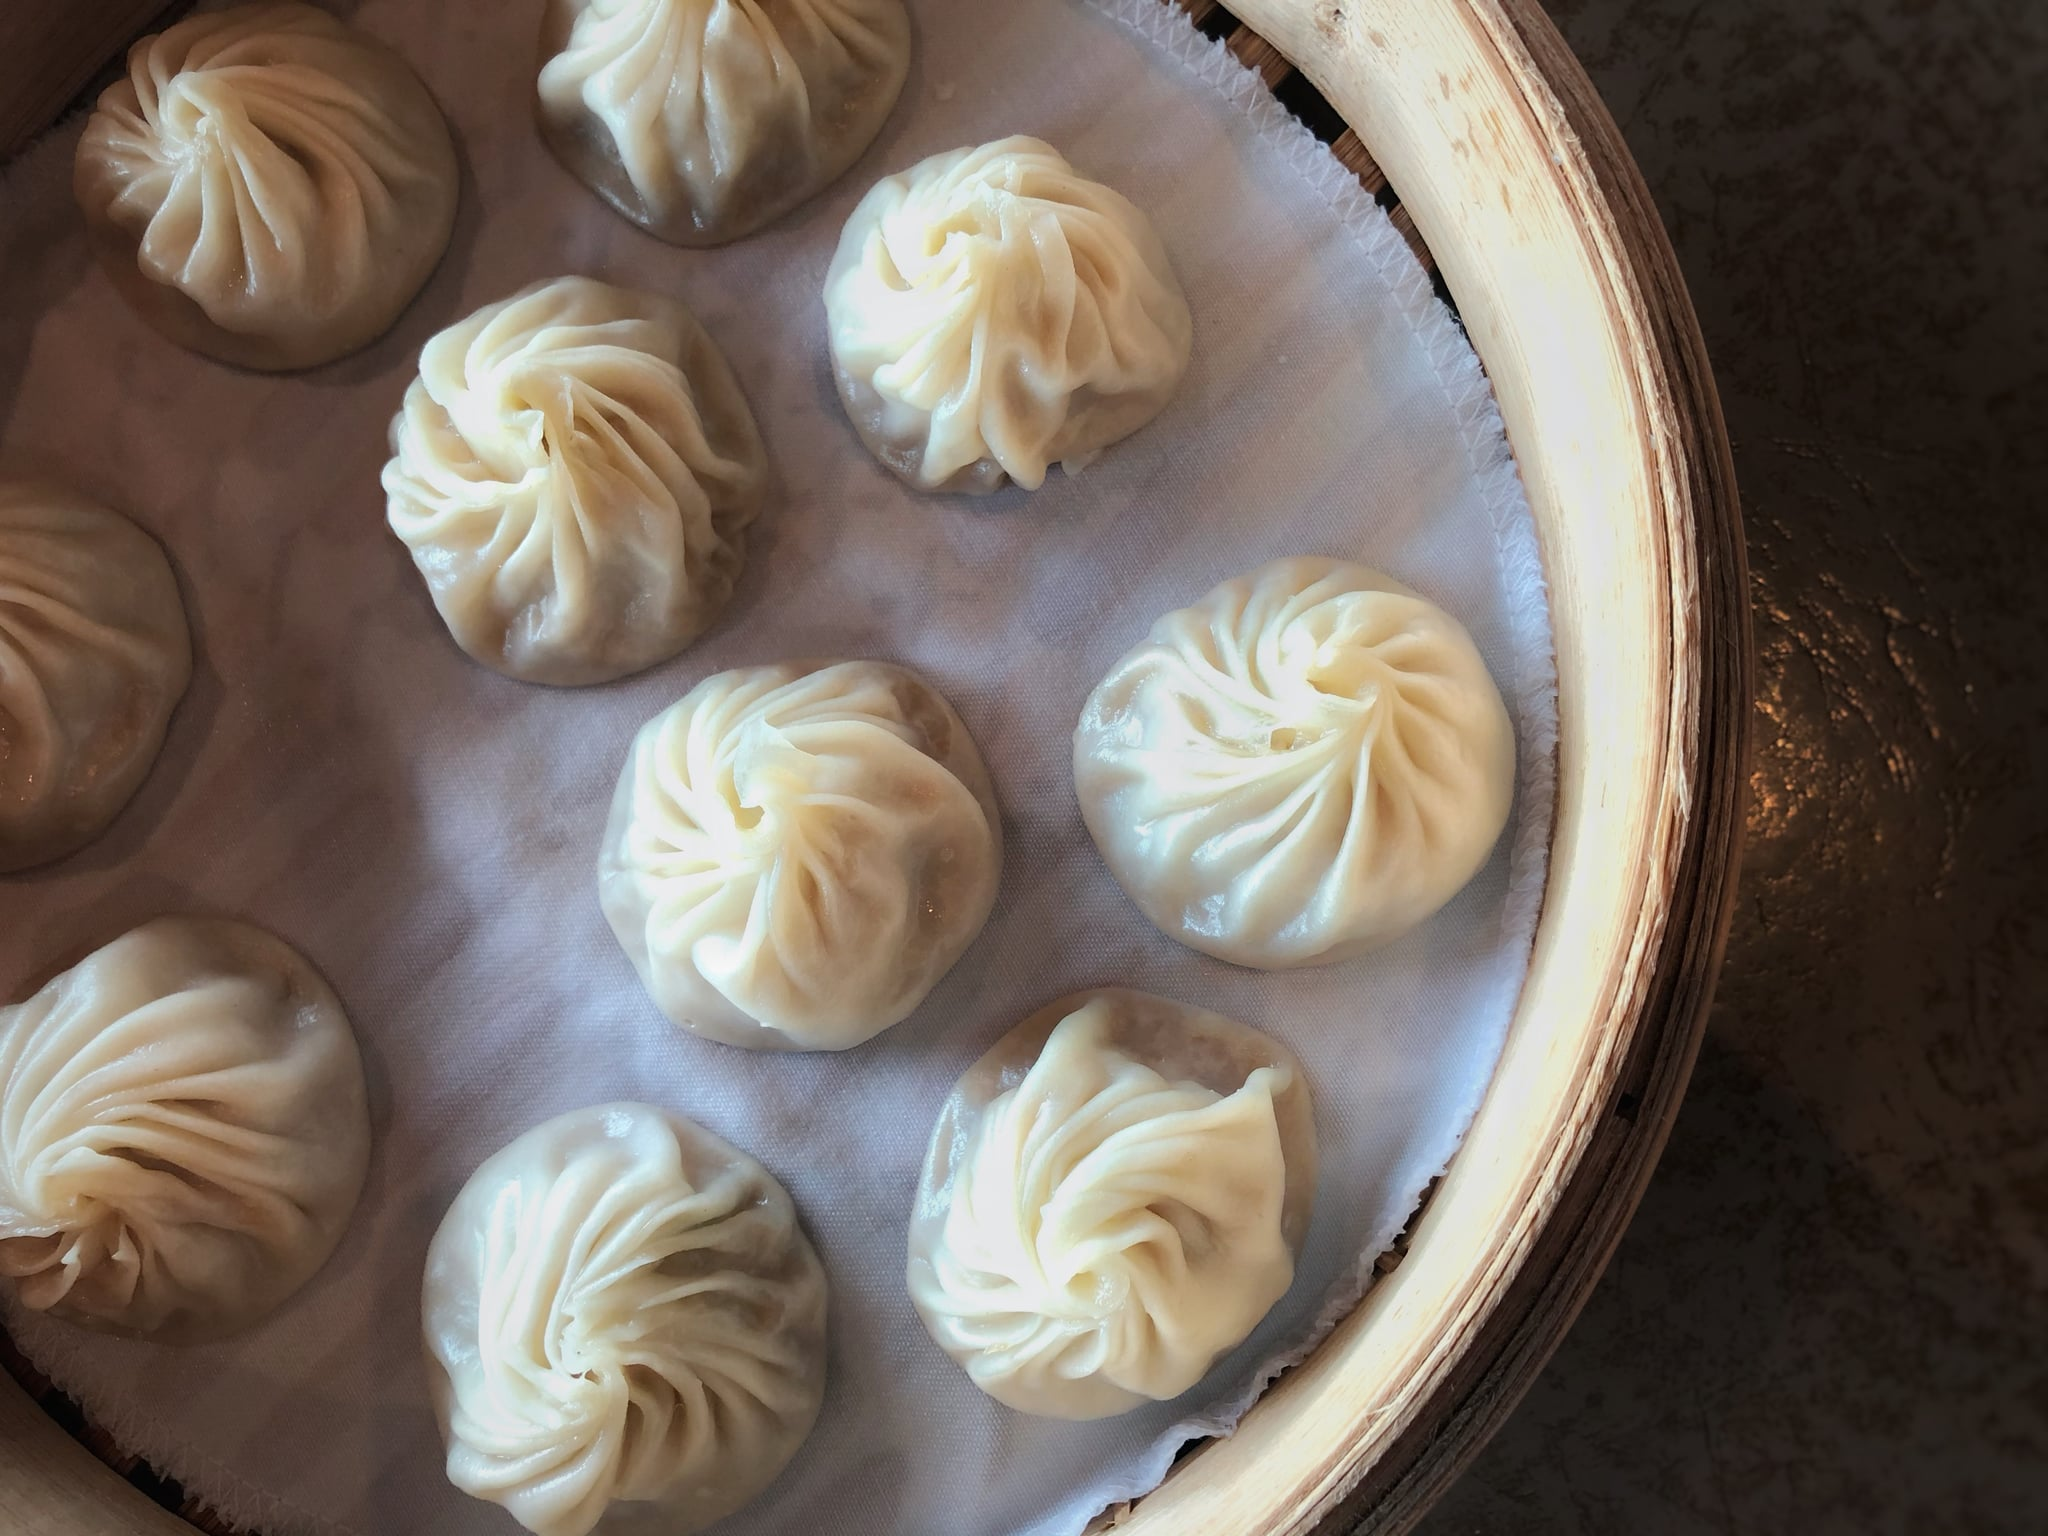 An overhead view of a basket of Chinese steam soup dumpling also known as Xiao Long Bao - 小笼包